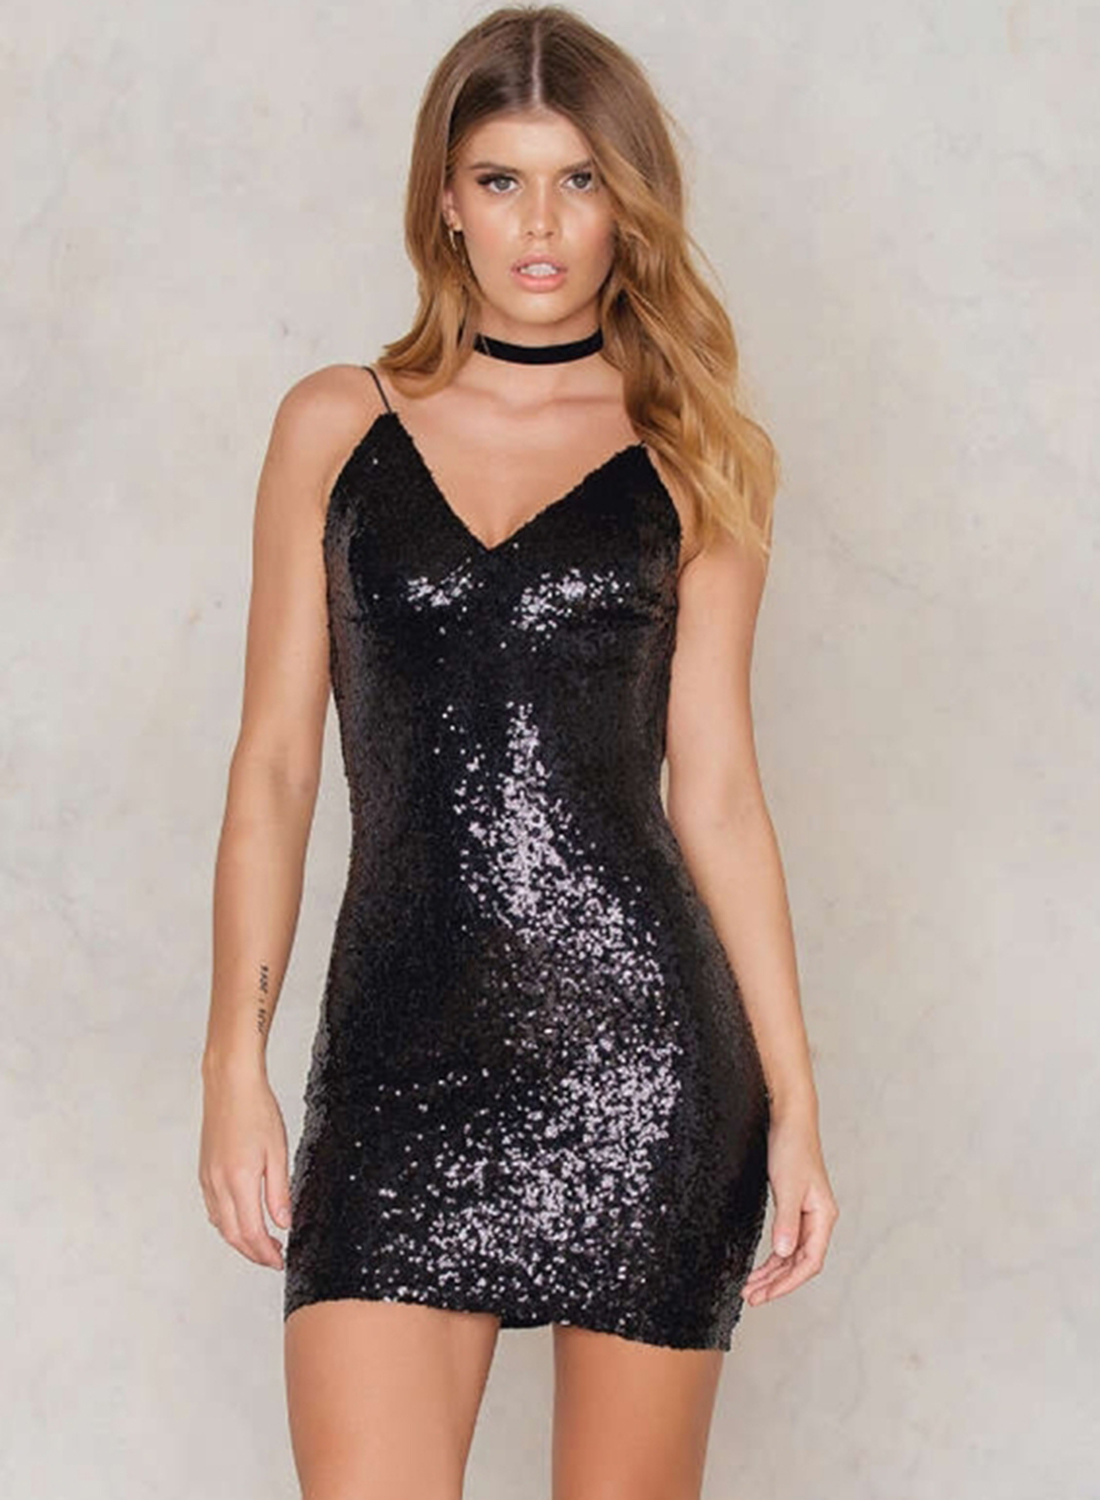 Spaghetti Strap V Neck Sequins Bodycon Club Mini Dress